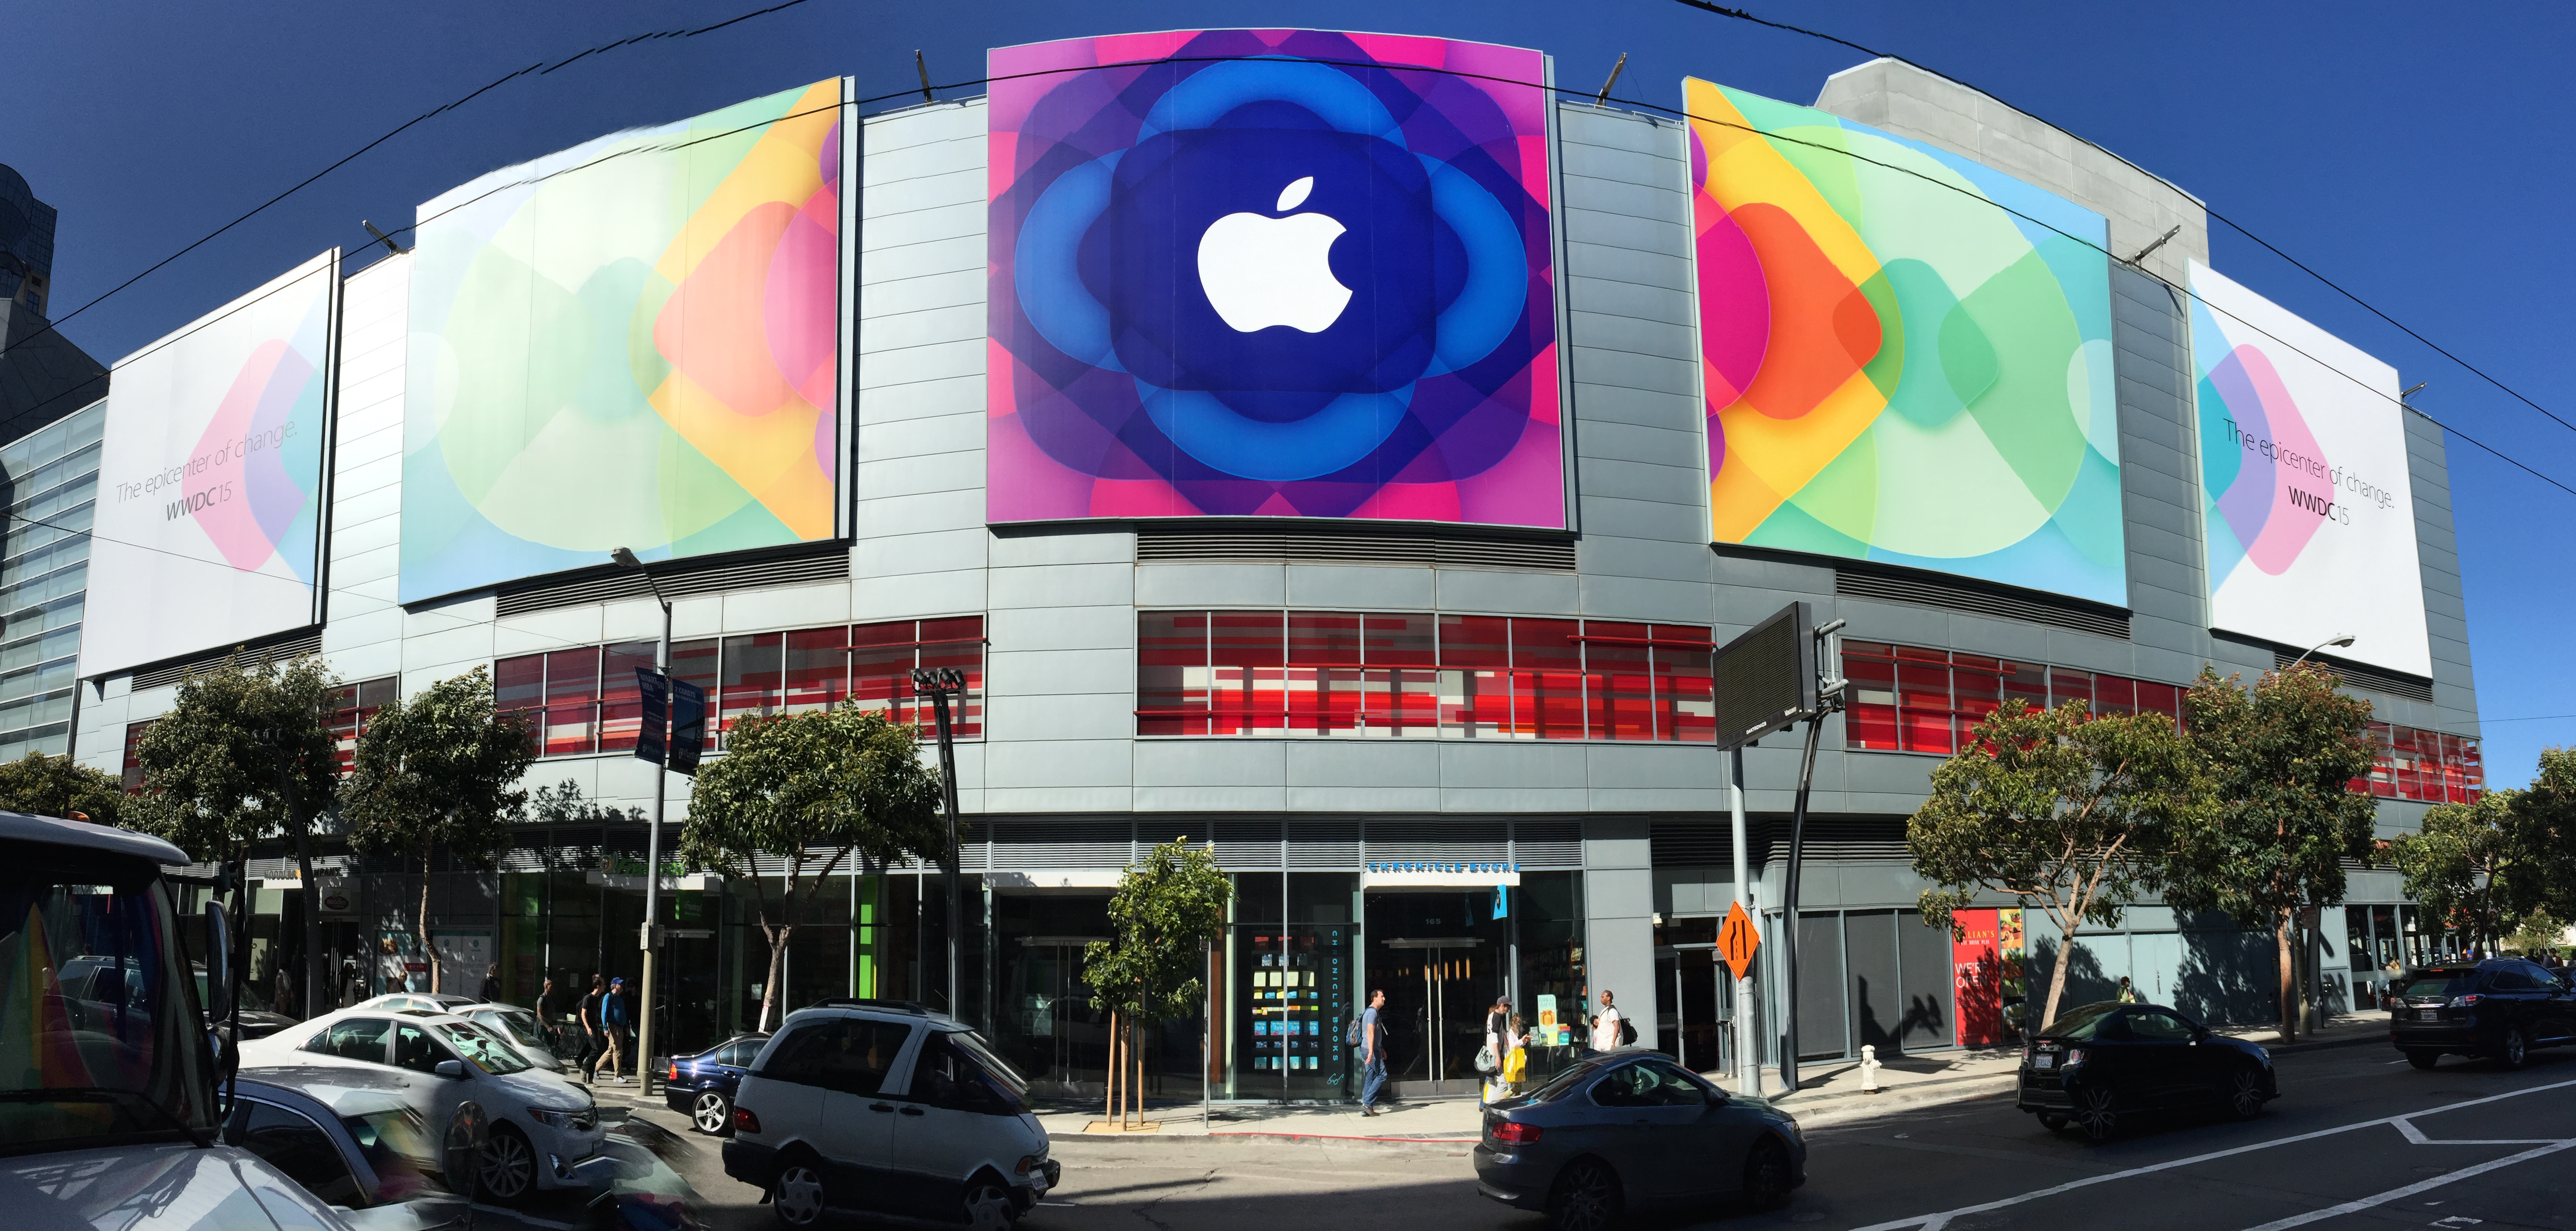 WWDC signage on the Metreon building.